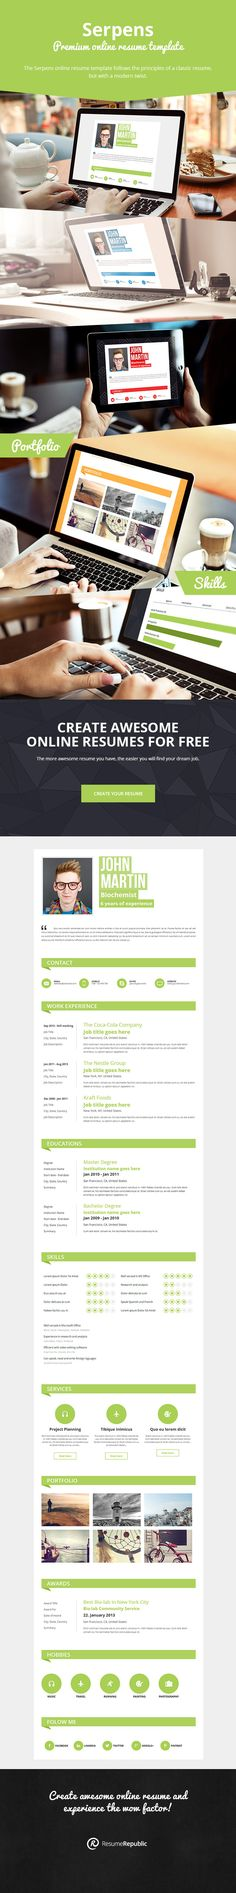 Serpens | Premium online resume template. The Serpens online resume template follows the principles of a classic resume, but with a modern twist featuring section titles with background color, a modern rating system, portfolio, sharing resume on social networks and a lot more. The Serpens online resume template has it all. #jobsearch #careers #jobs #resume #resumetemplates #onlineresumes #CV #coverletter #templates #resumes